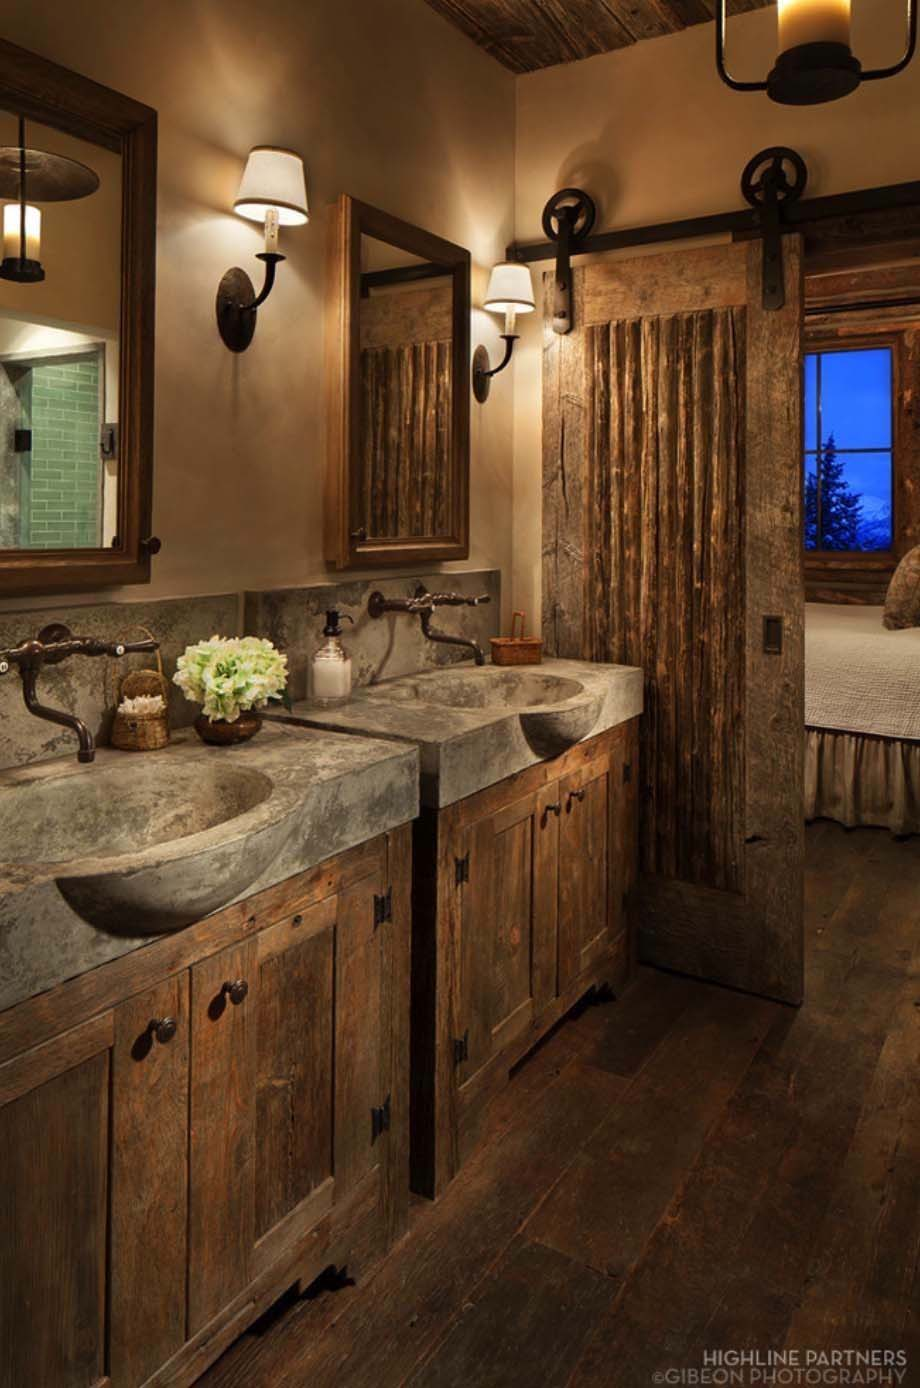 Decorative Rustic Storage Projects For Your Bathroom: 17 Inspiring Rustic Bathroom Decor Ideas For Cozy Home